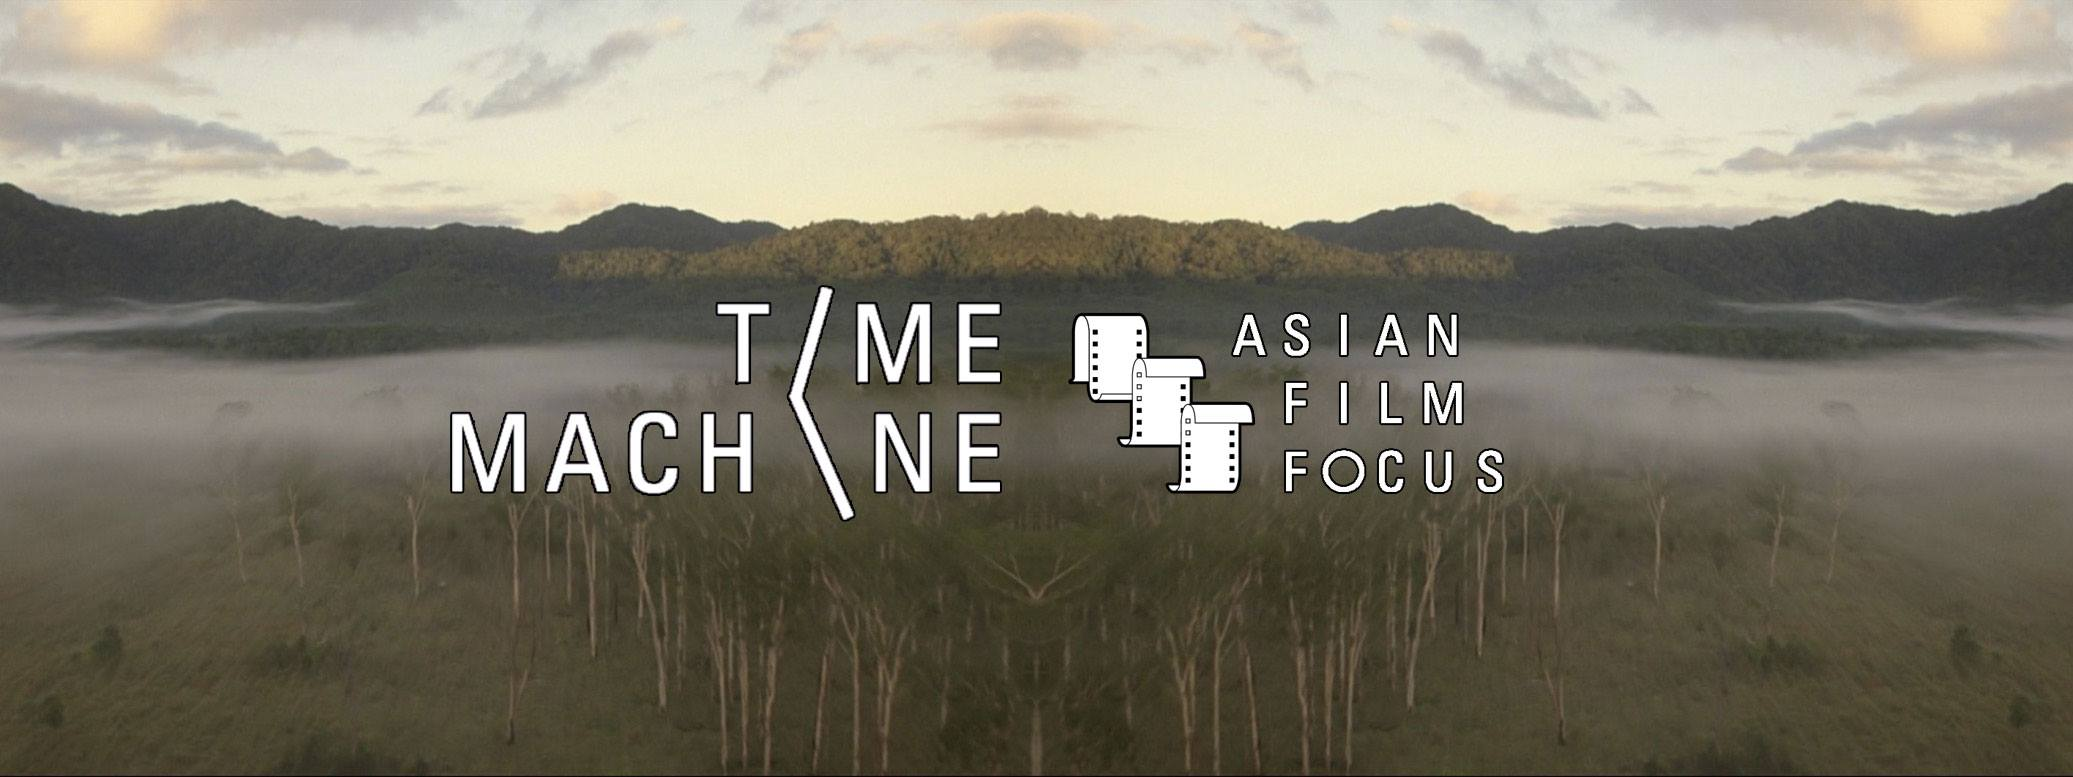 Truong Que Chi, Nguyen Trinh Thi participating in ASIAN FILM FOCUS 2017 festival